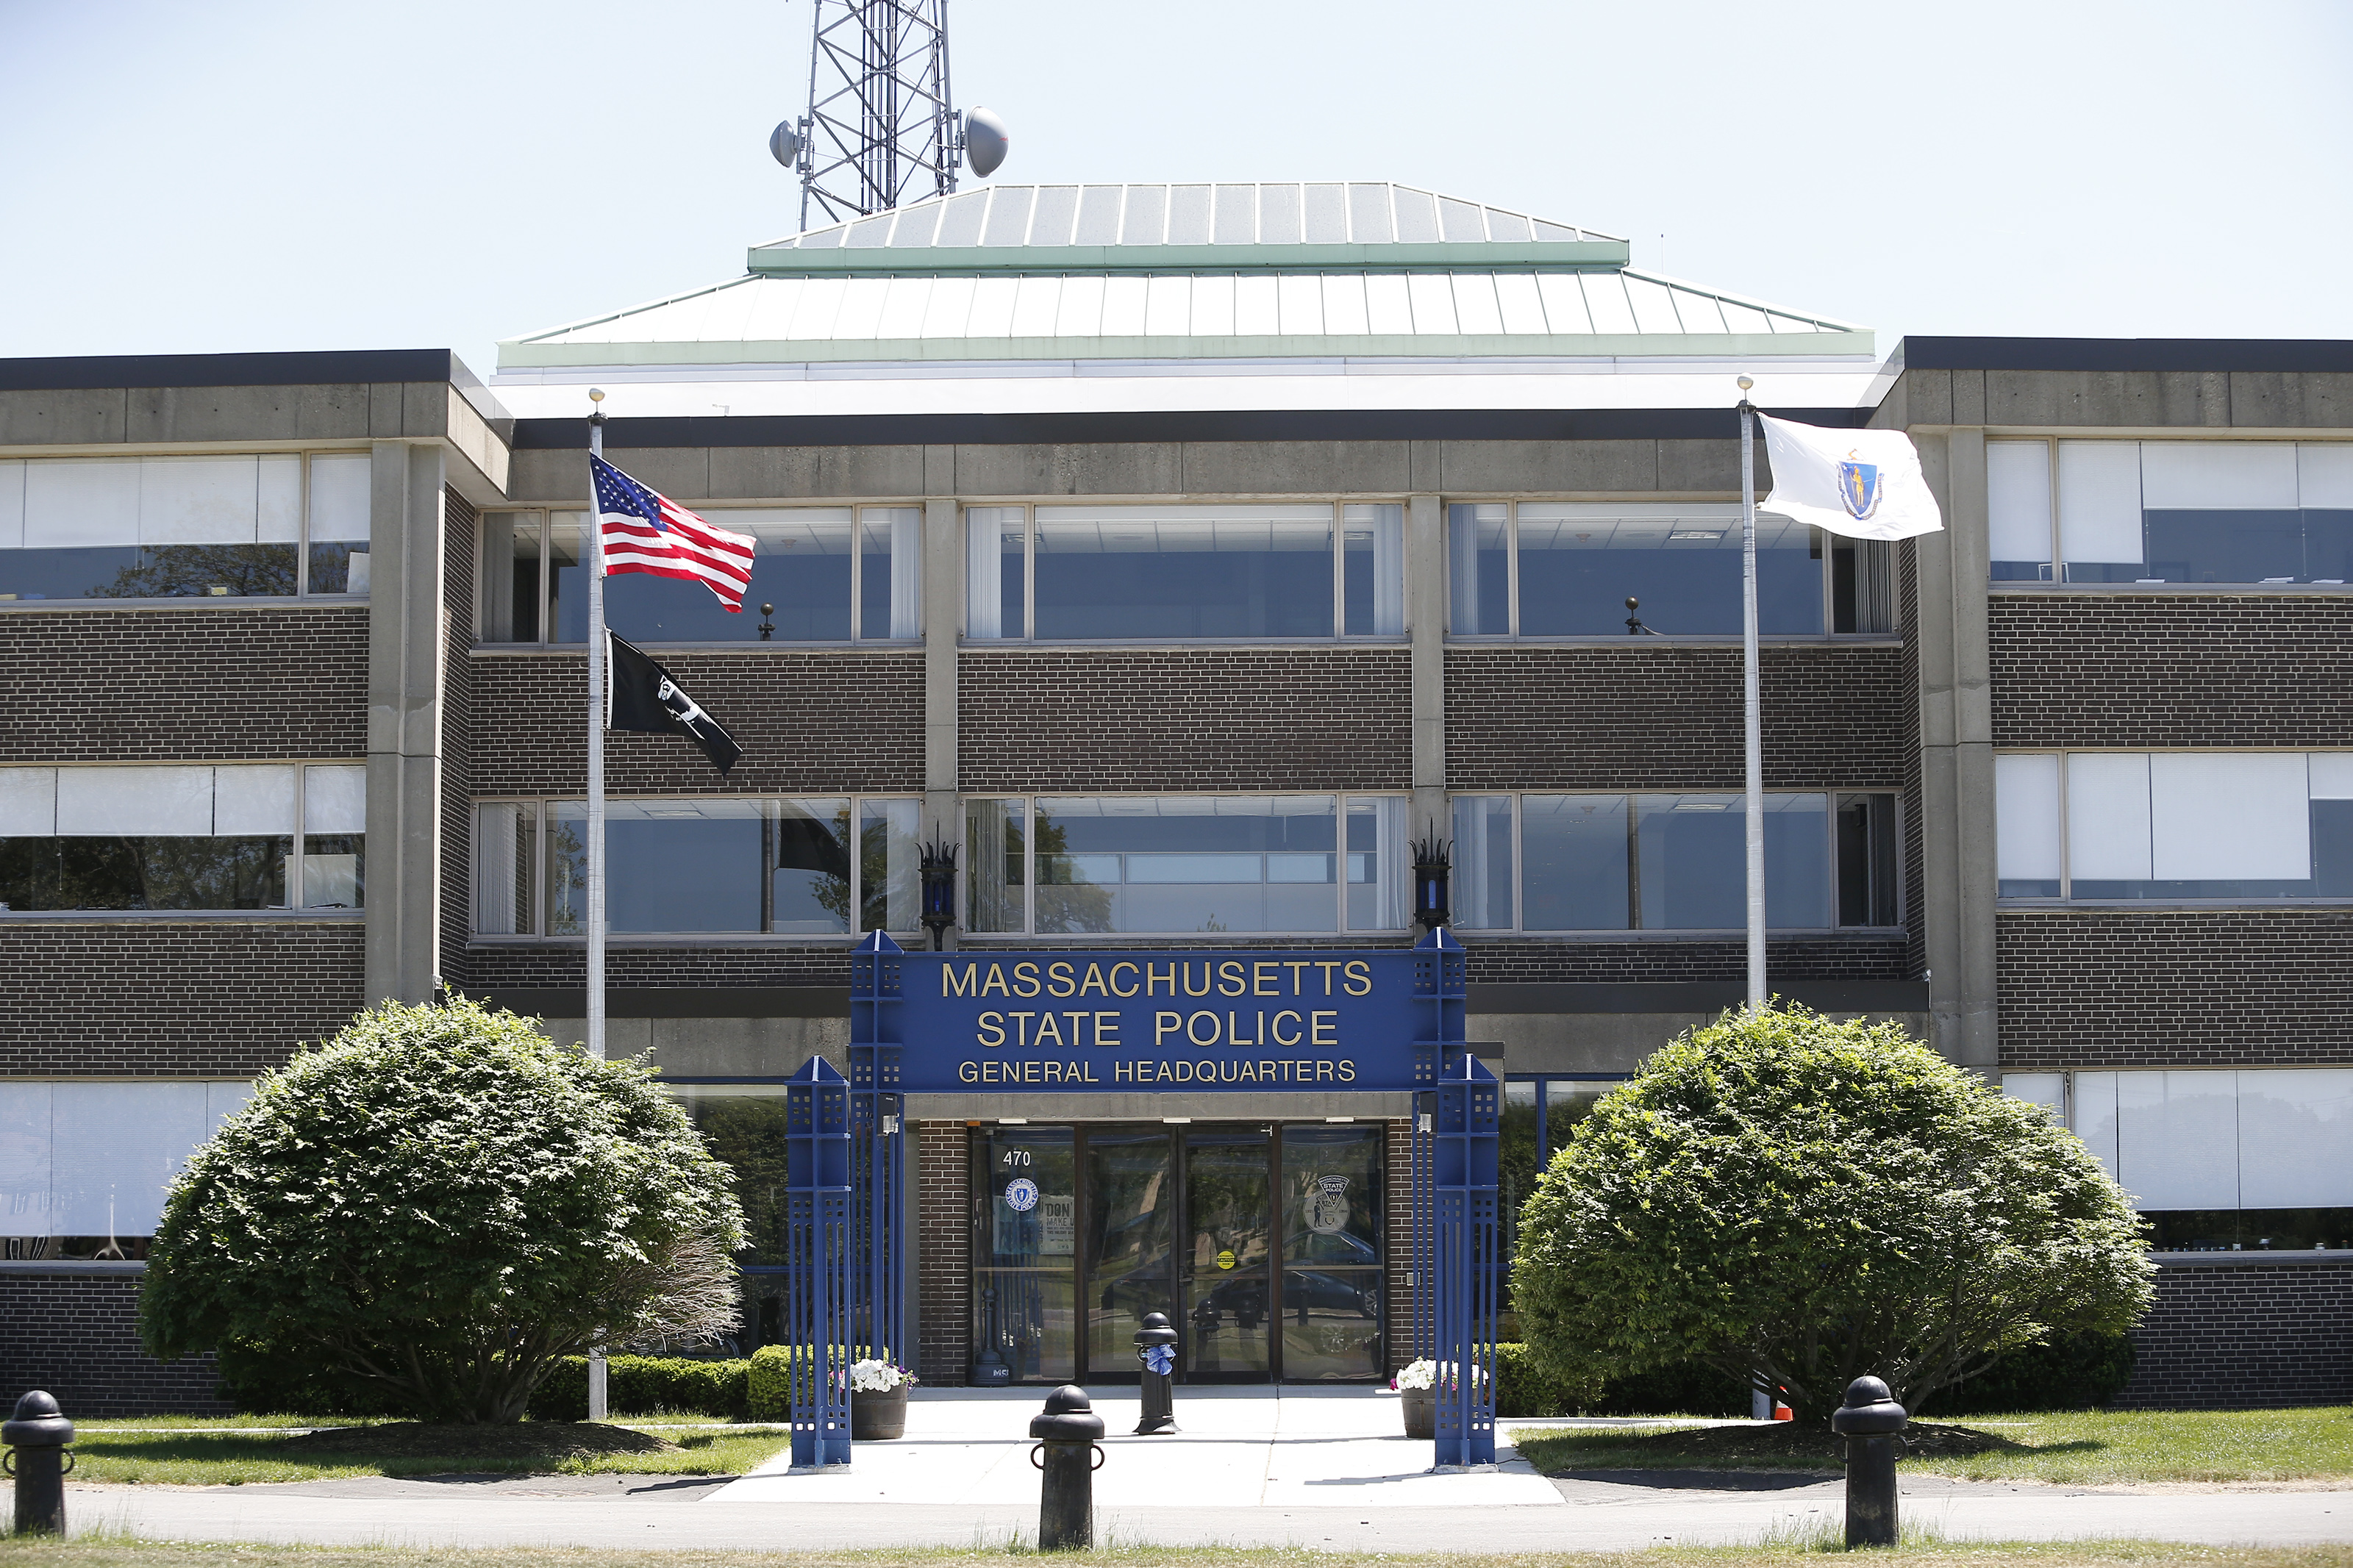 State Police destroyed key records in OT probe - The Boston